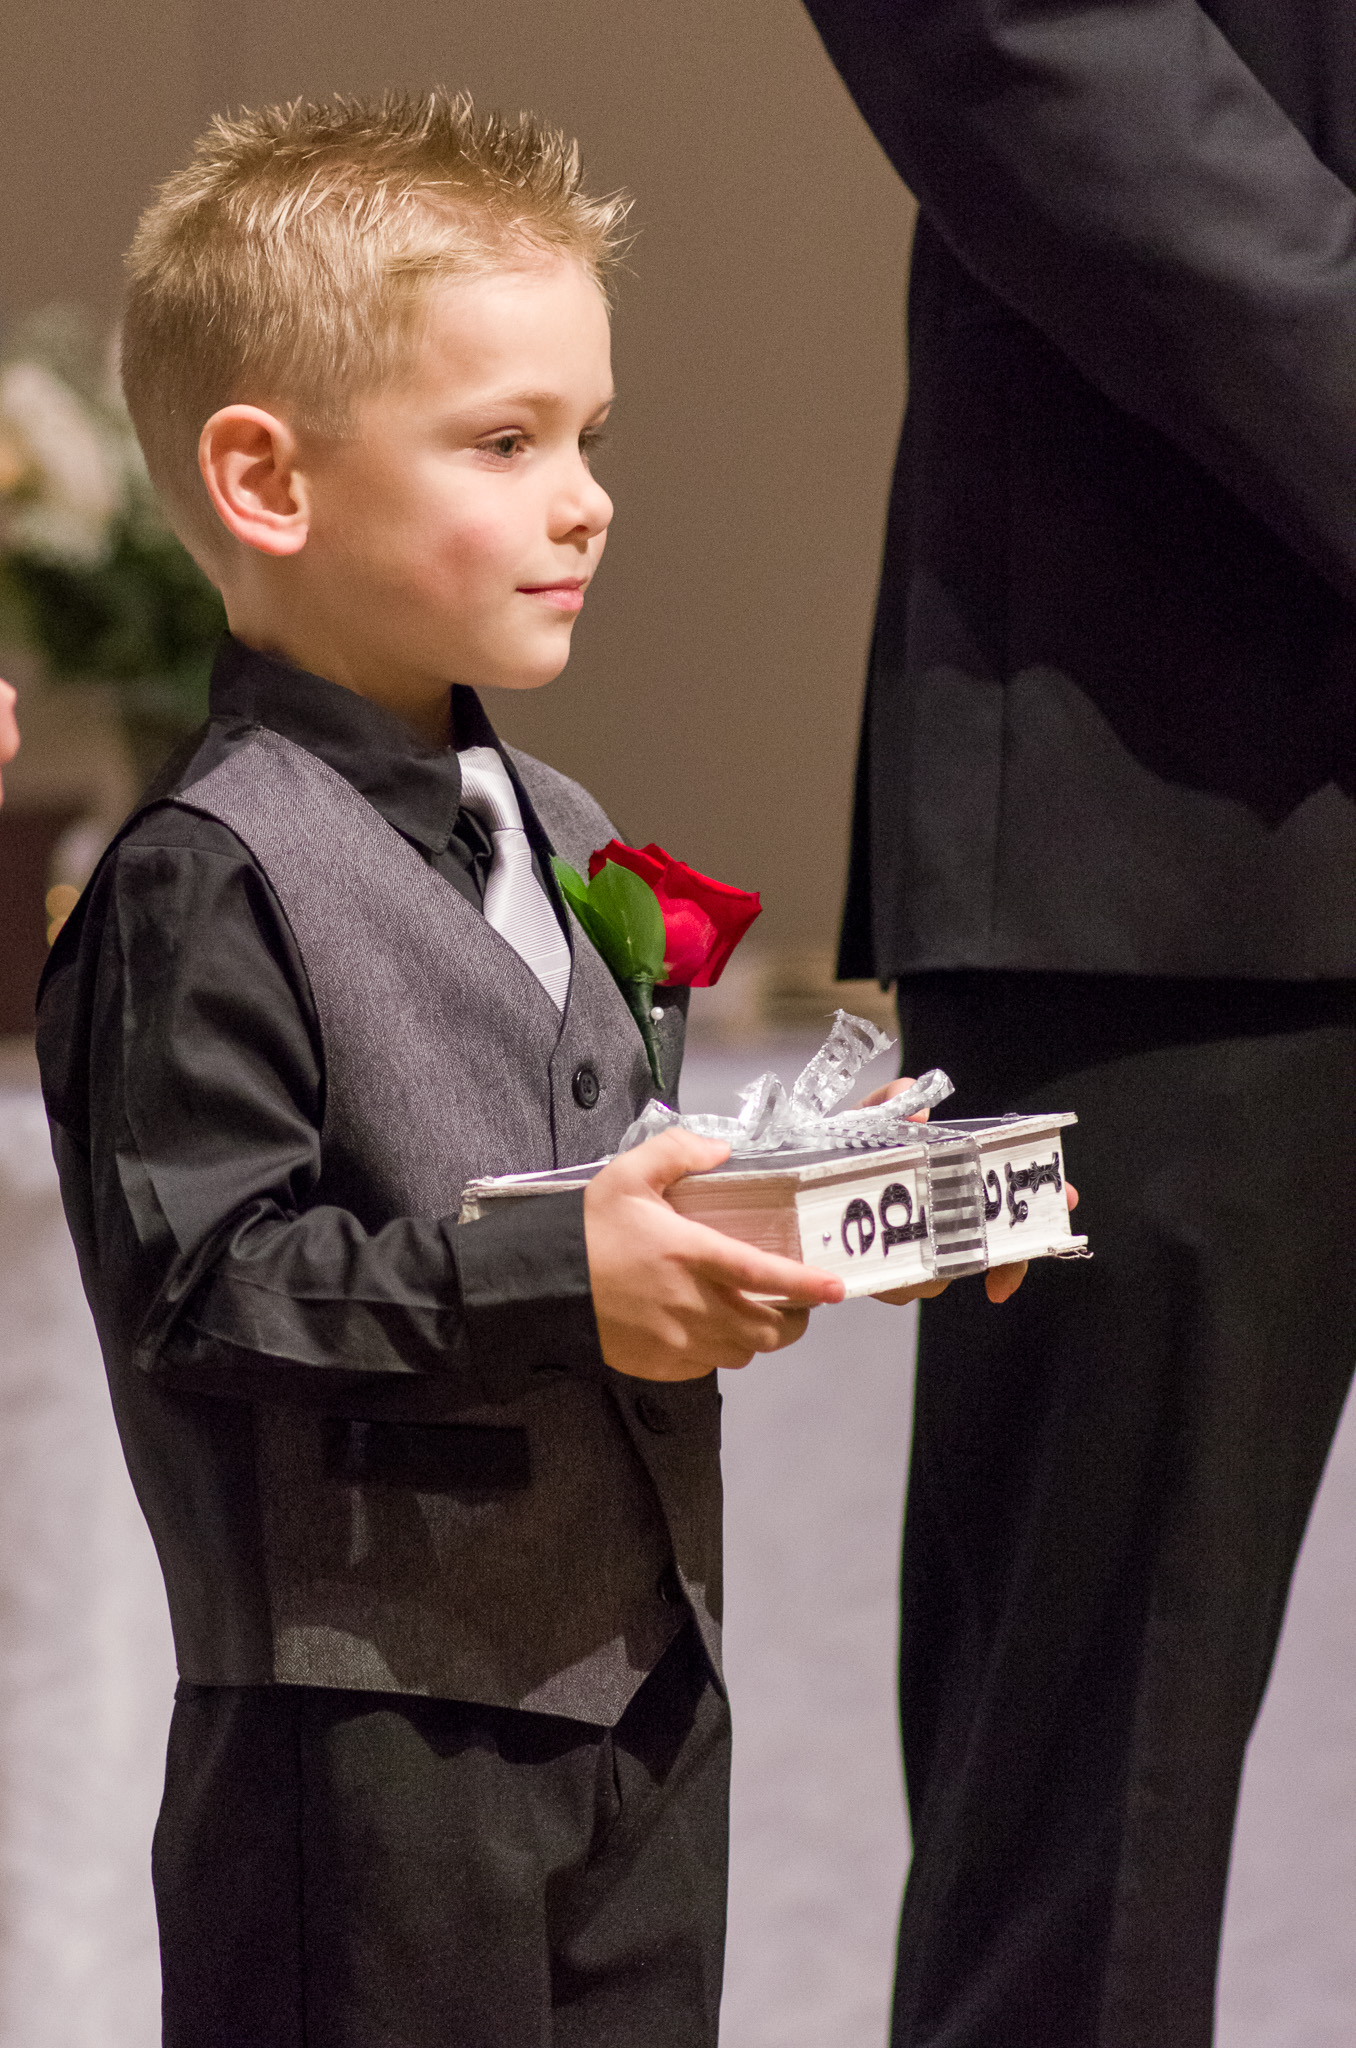 Another adorable ring bearer.... a trend I see!